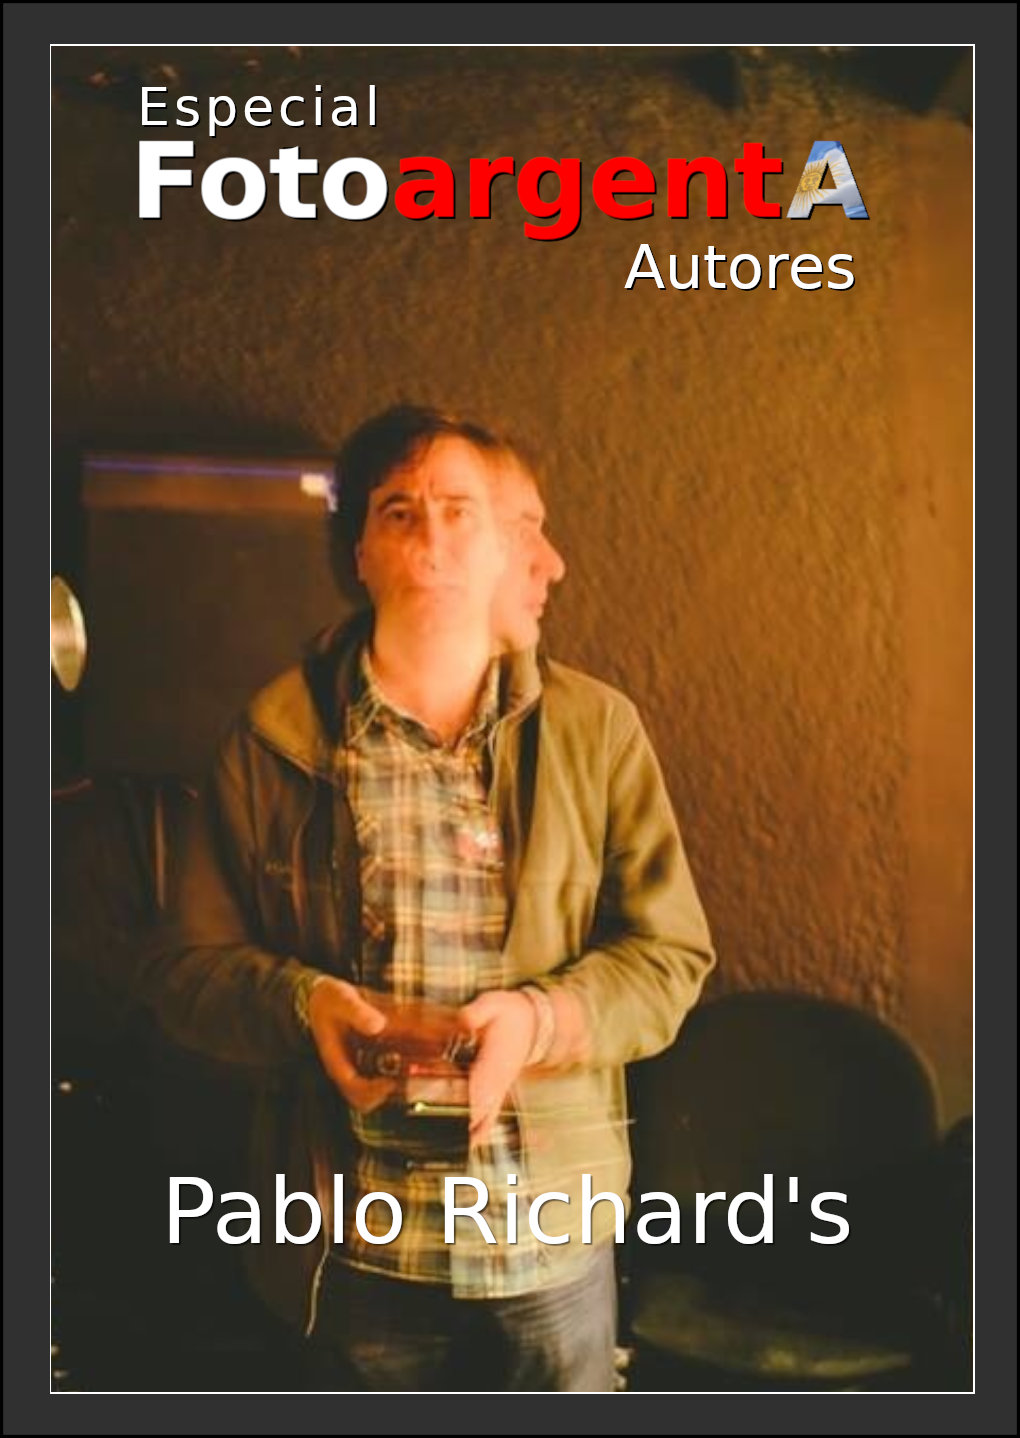 Tapa Revista de Pablo Richards